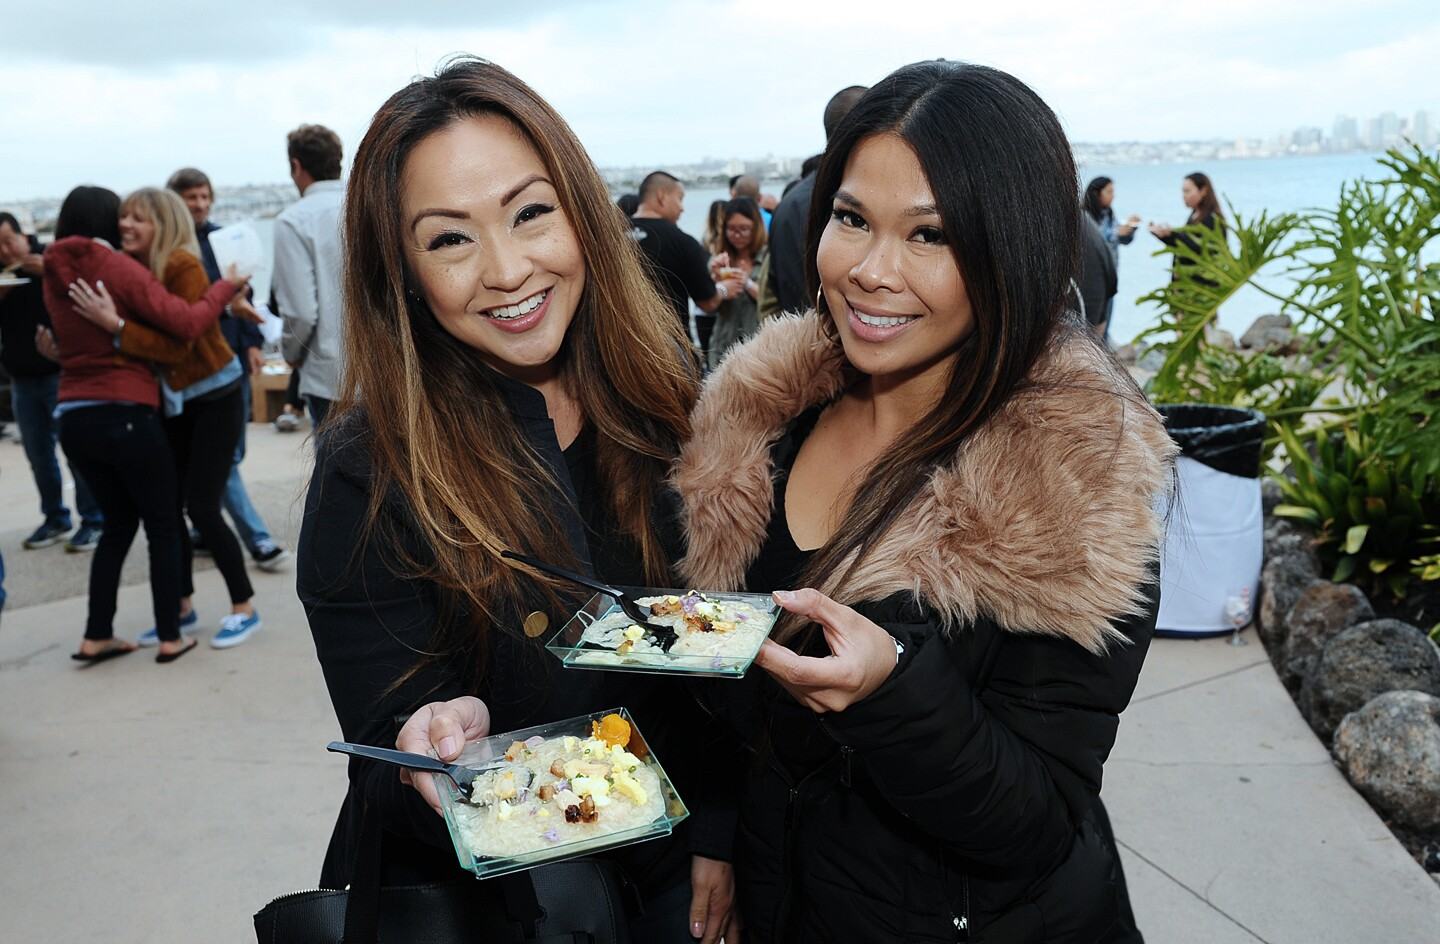 There was poke for days at the 10th annual I Love Poke San Diego 2019, a poke tasting event and competition featuring 30+ of the city's finest chefs and restaurants at the Bali Hai Restaurant on Shelter Island on Tuesday, May 21, 2019.